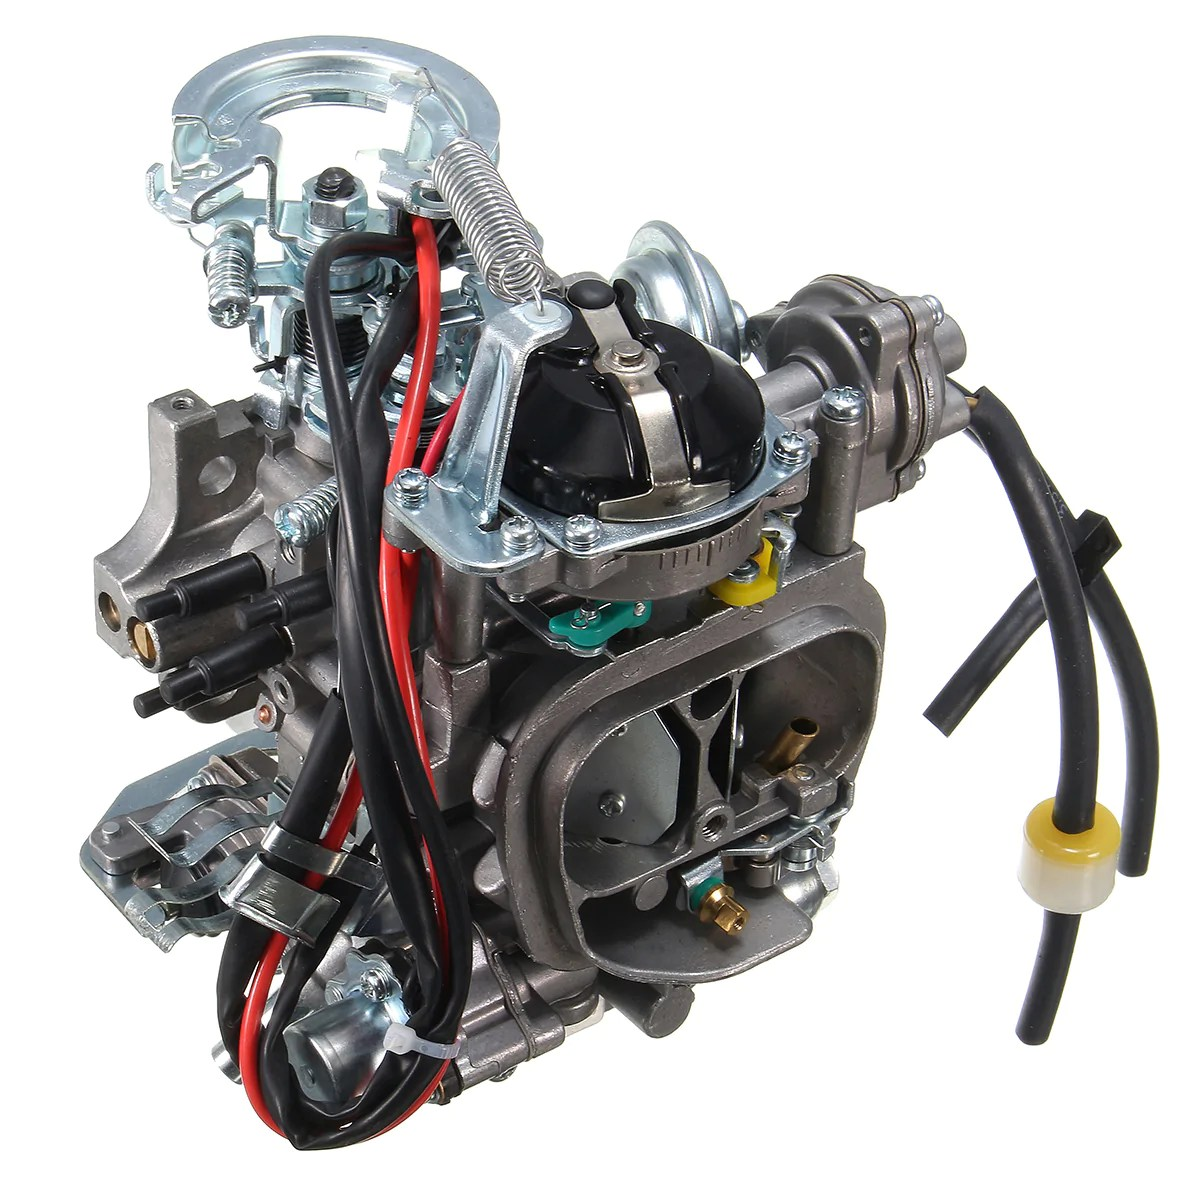 hight resolution of carb carburetor trucks for toyota 22r celica 4 runner style engine oil free and grease